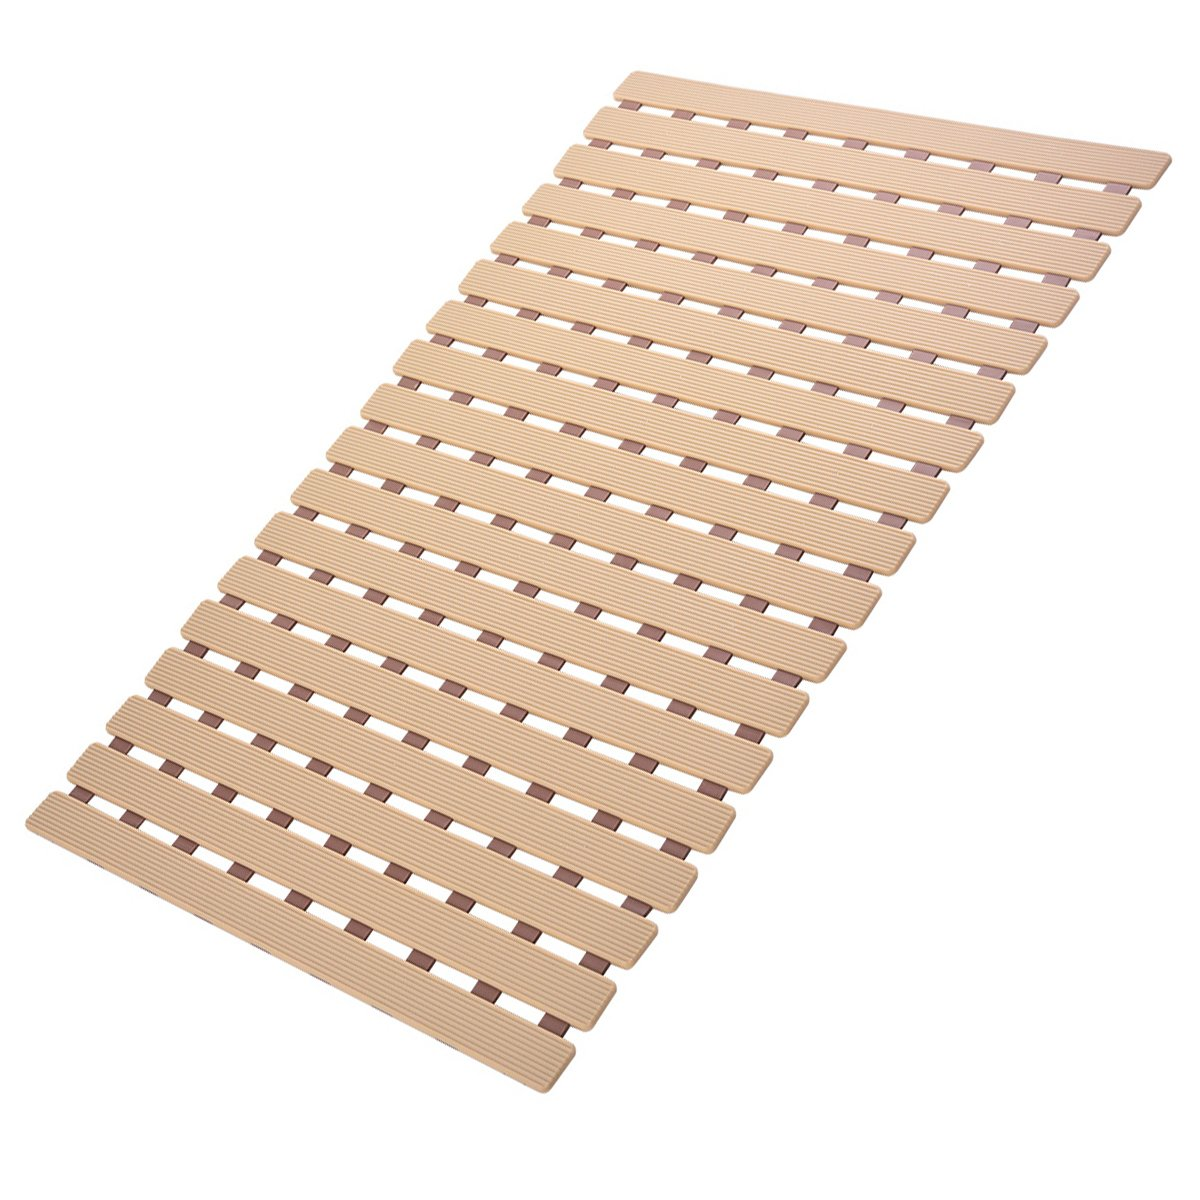 ifrmmy Non Slip Bath Shower Floor Mat with Drain Hole and Suction Cups- Anti Slip and Mold Resistant Bathroom Stall Mat- 24.8'' x 15.7'' (Blue) NOMM 4336306114